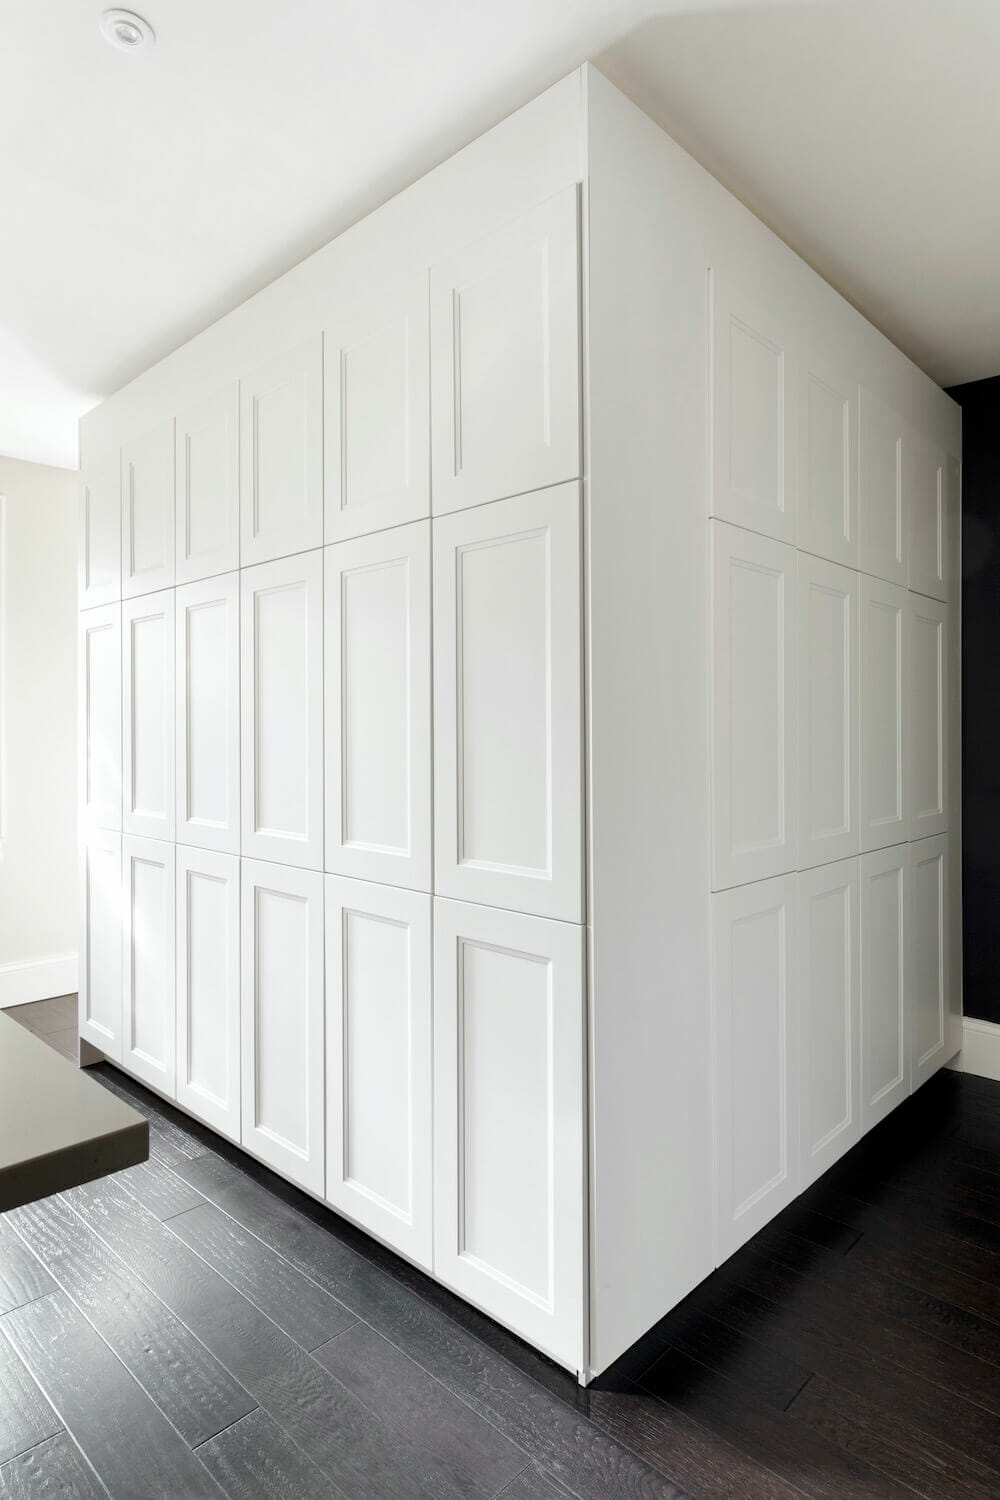 7 full wall kitchen cabinets an